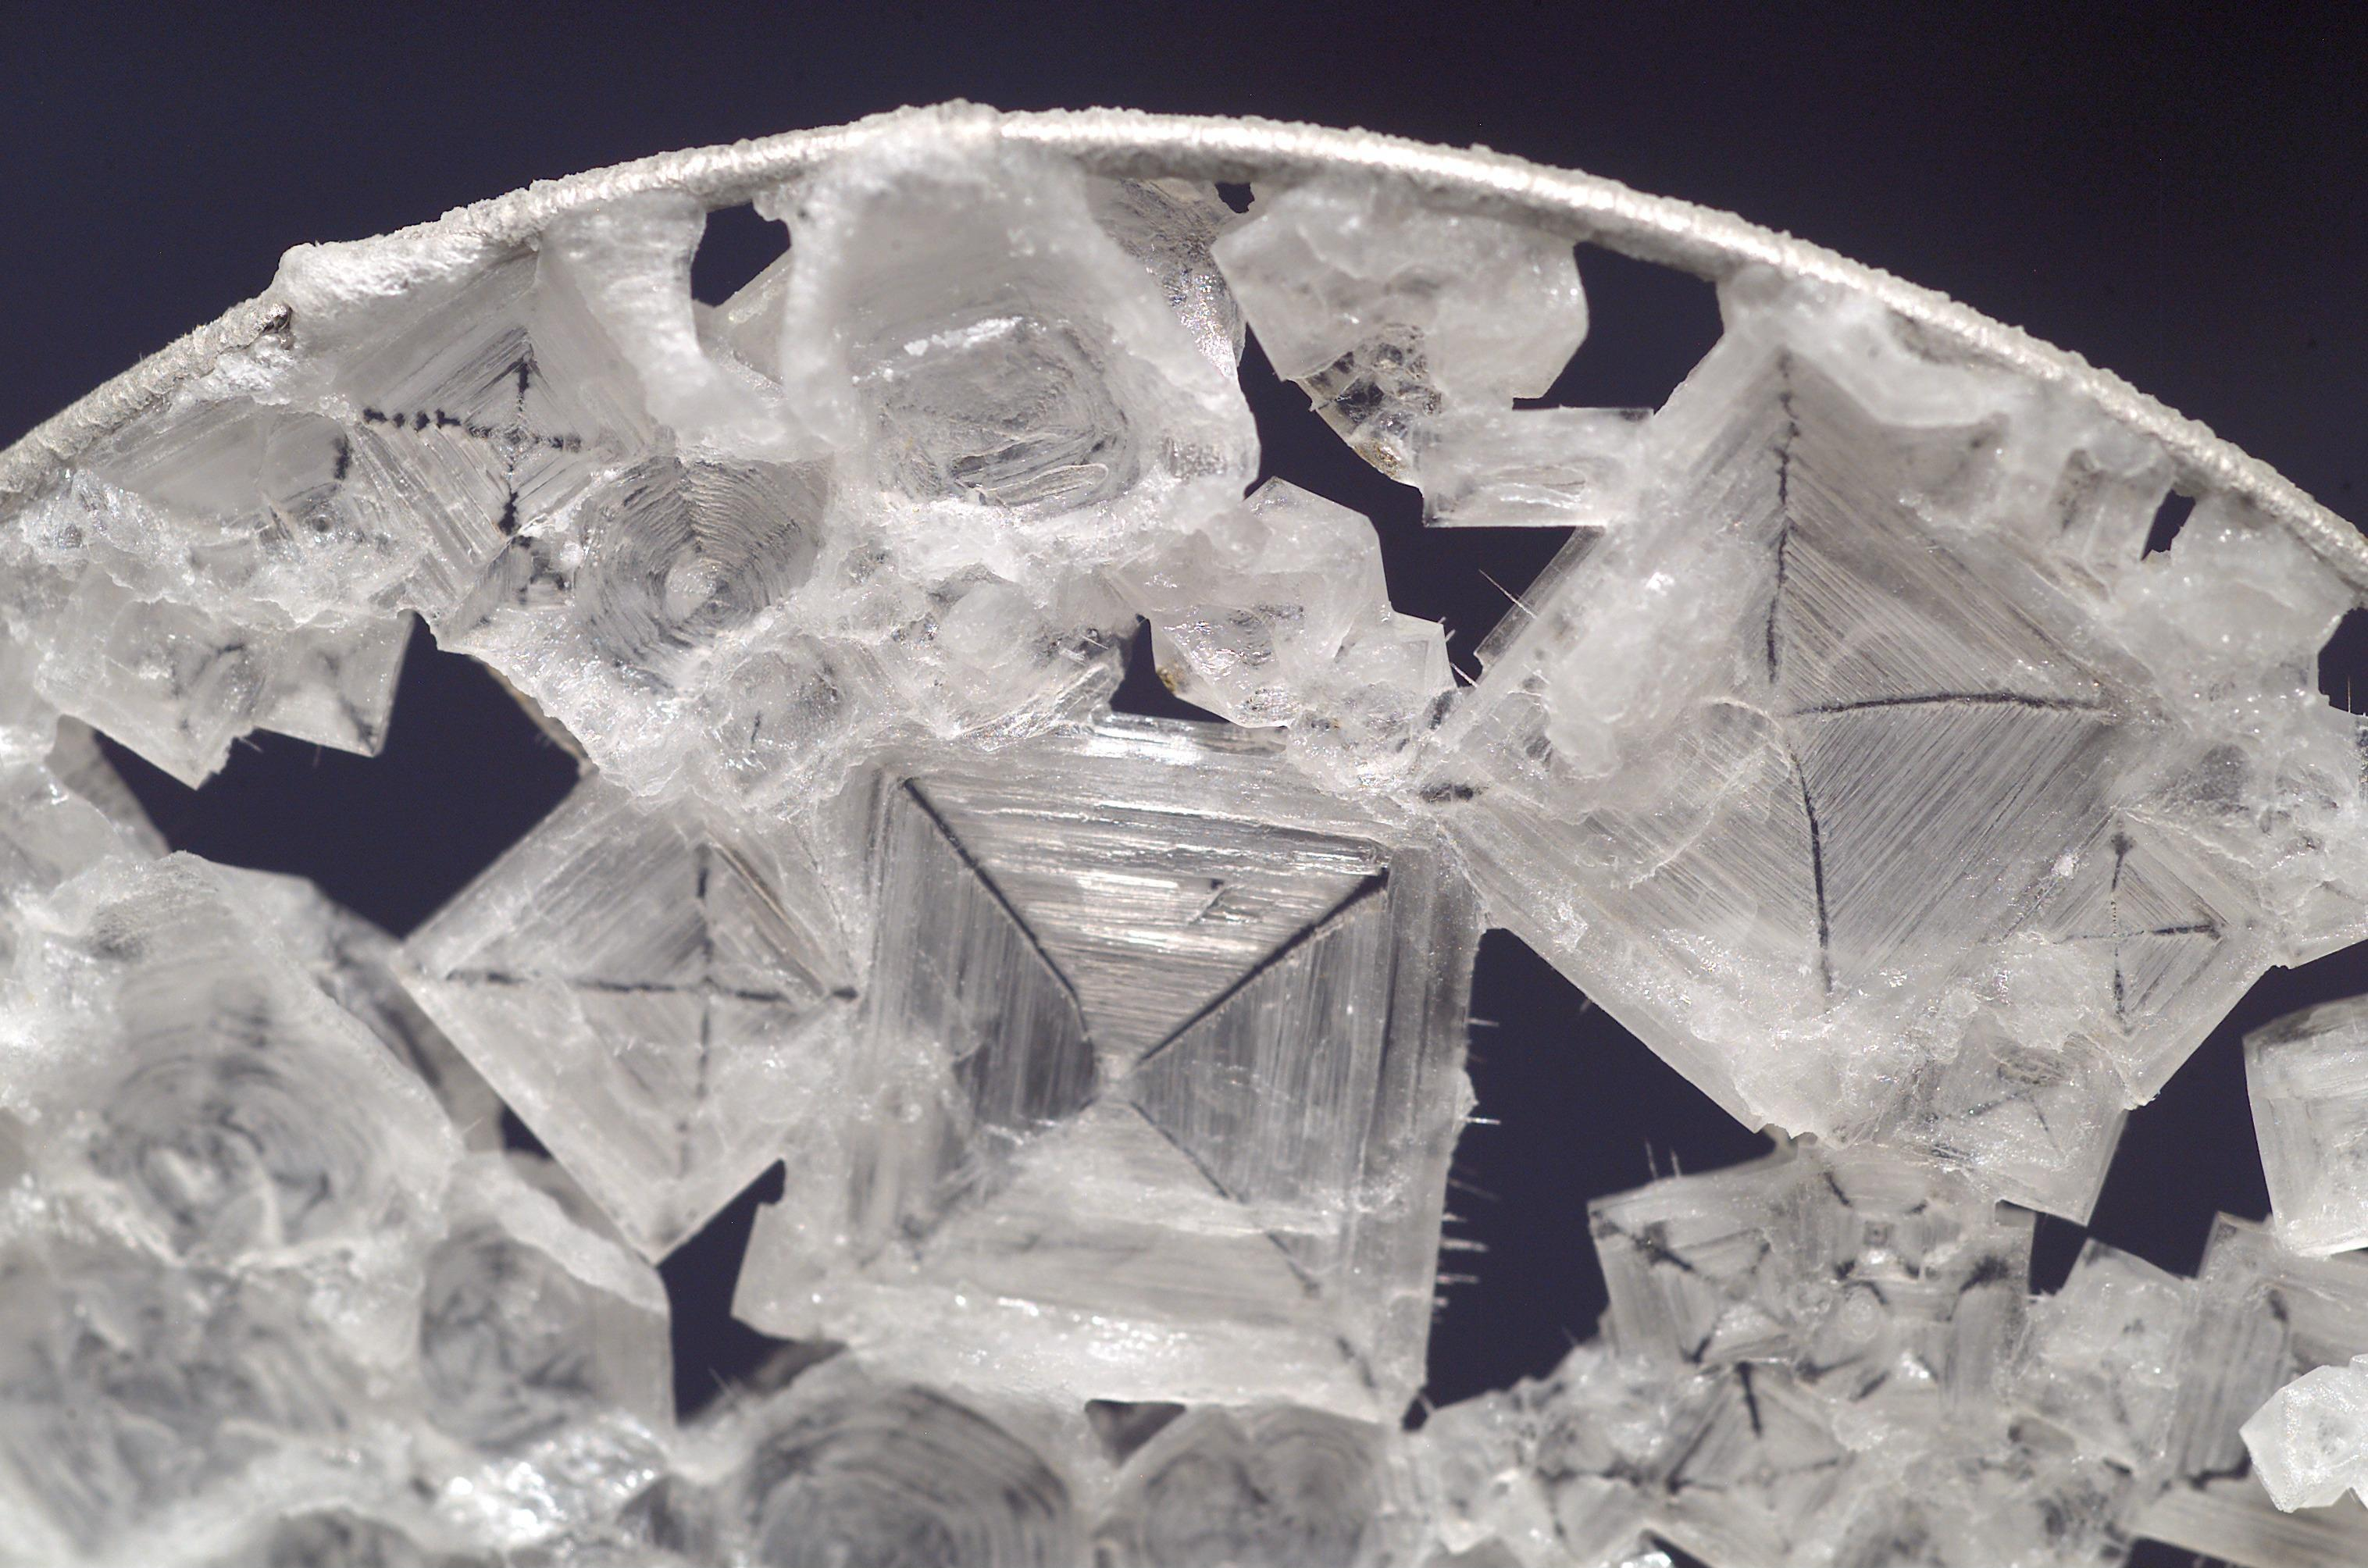 File Close Up View Of Sodium Chloride Crystals Jpg